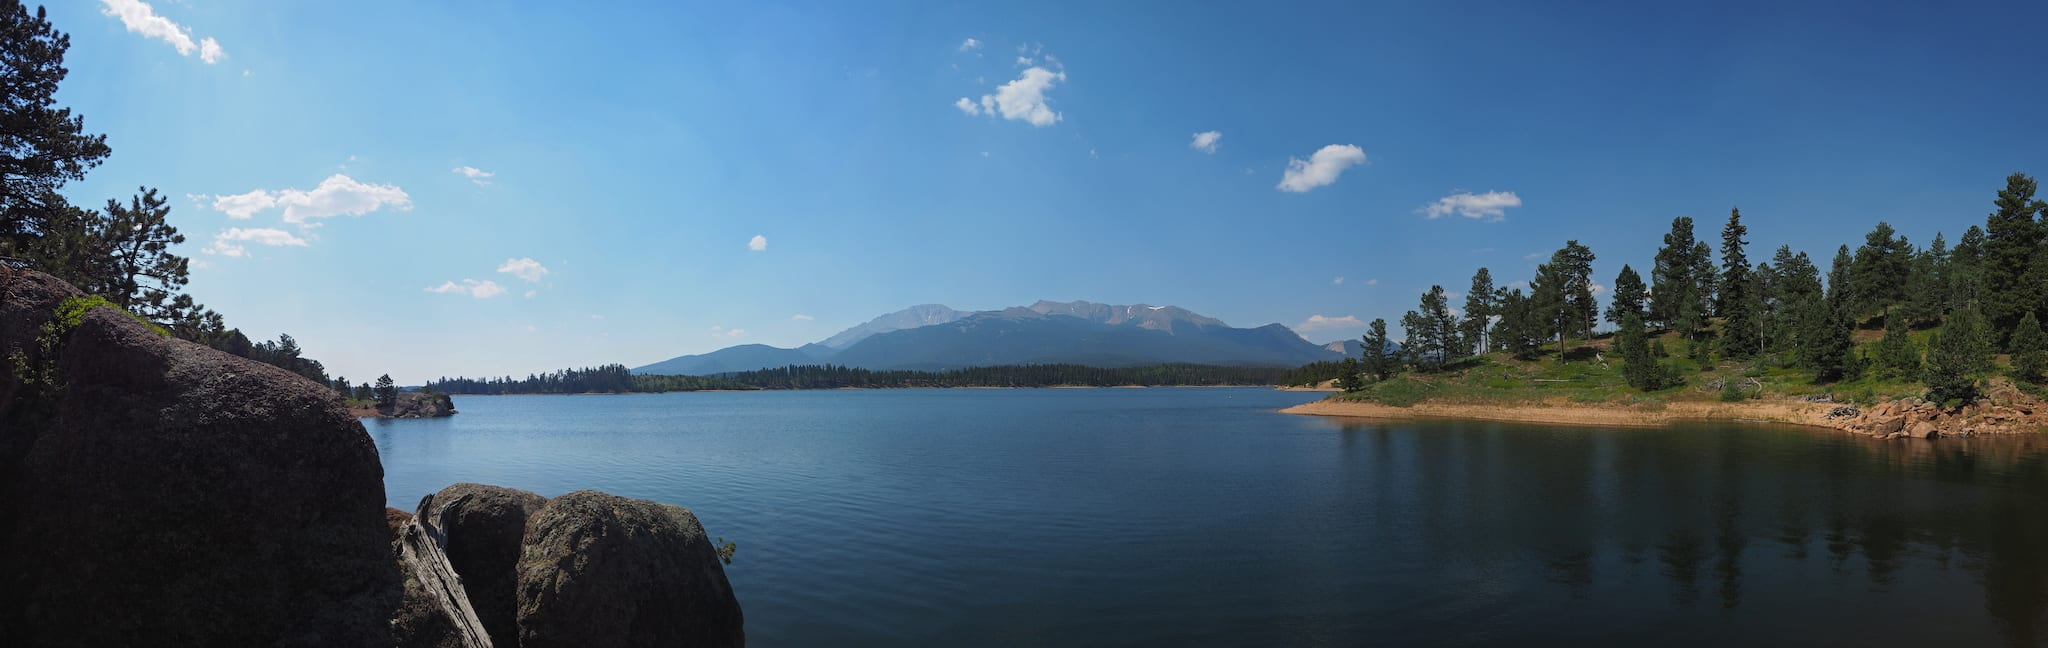 North Catamount Reservoir Pikes Peak Colorado Panorama